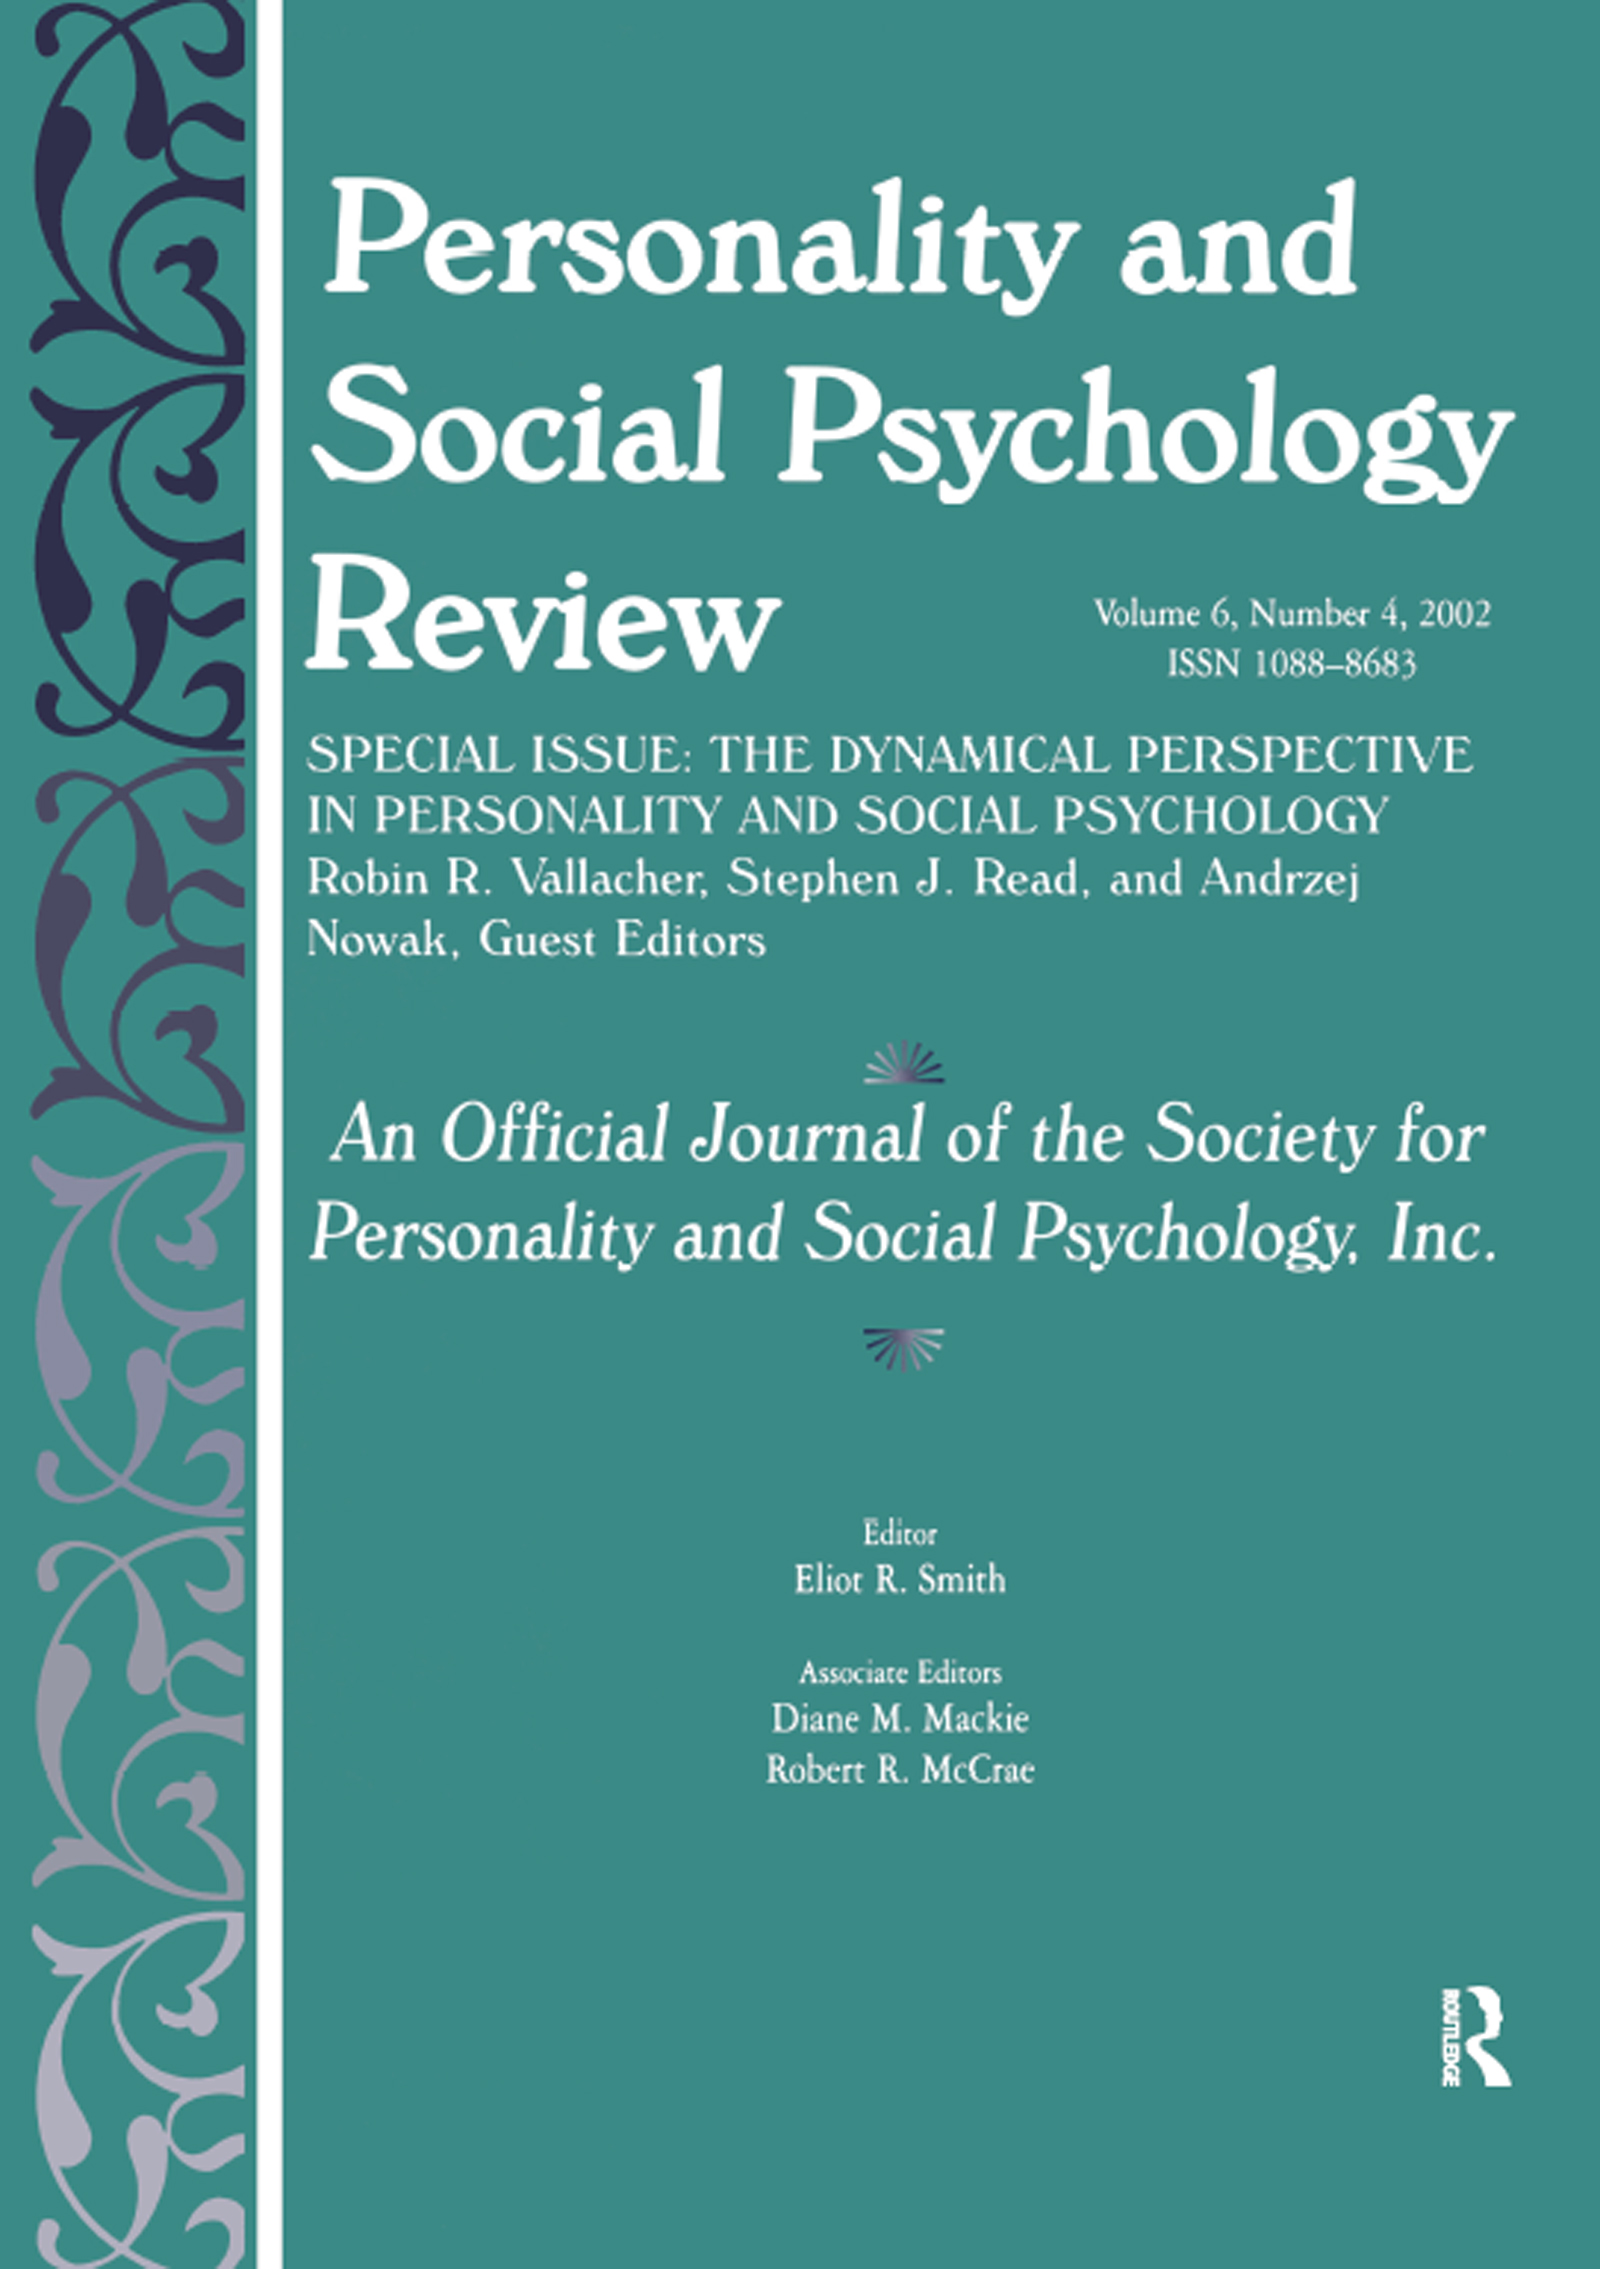 The Dynamic Perspective in Personality and Social Psychology: A Special Issue of personality and Social Psychology Review (Paperback) book cover